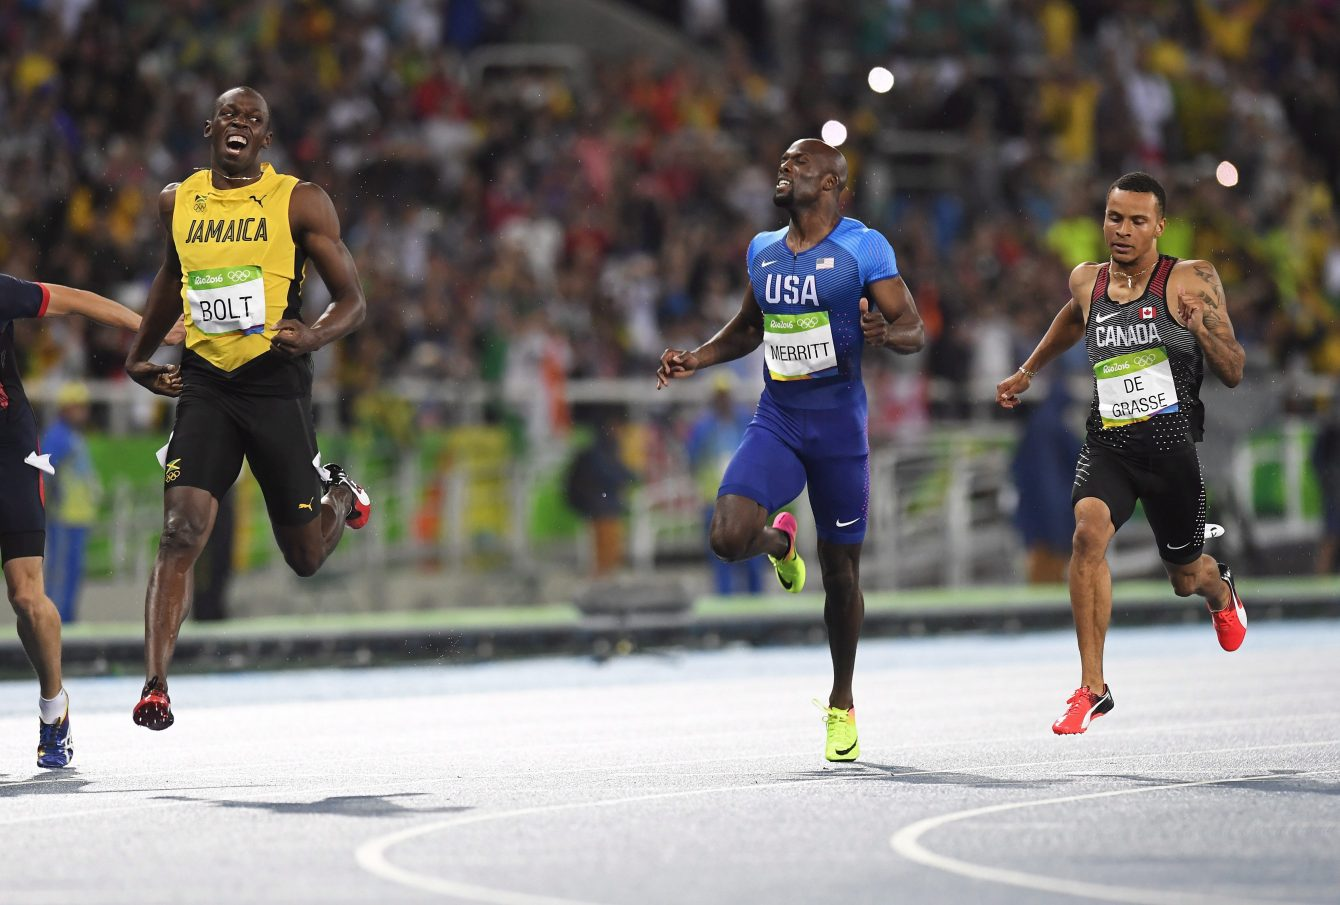 Jamaica's Usain Bolt, left to right, United States' Lashawn Merritt and Canada's Andre De Grasse react after crossing the finish line in the men's 200-metre final at the 2016 Summer Olympics in Rio de Janeiro, Brazil on Thursday, August 18, 2016. THE CANADIAN PRESS/Frank Gunn